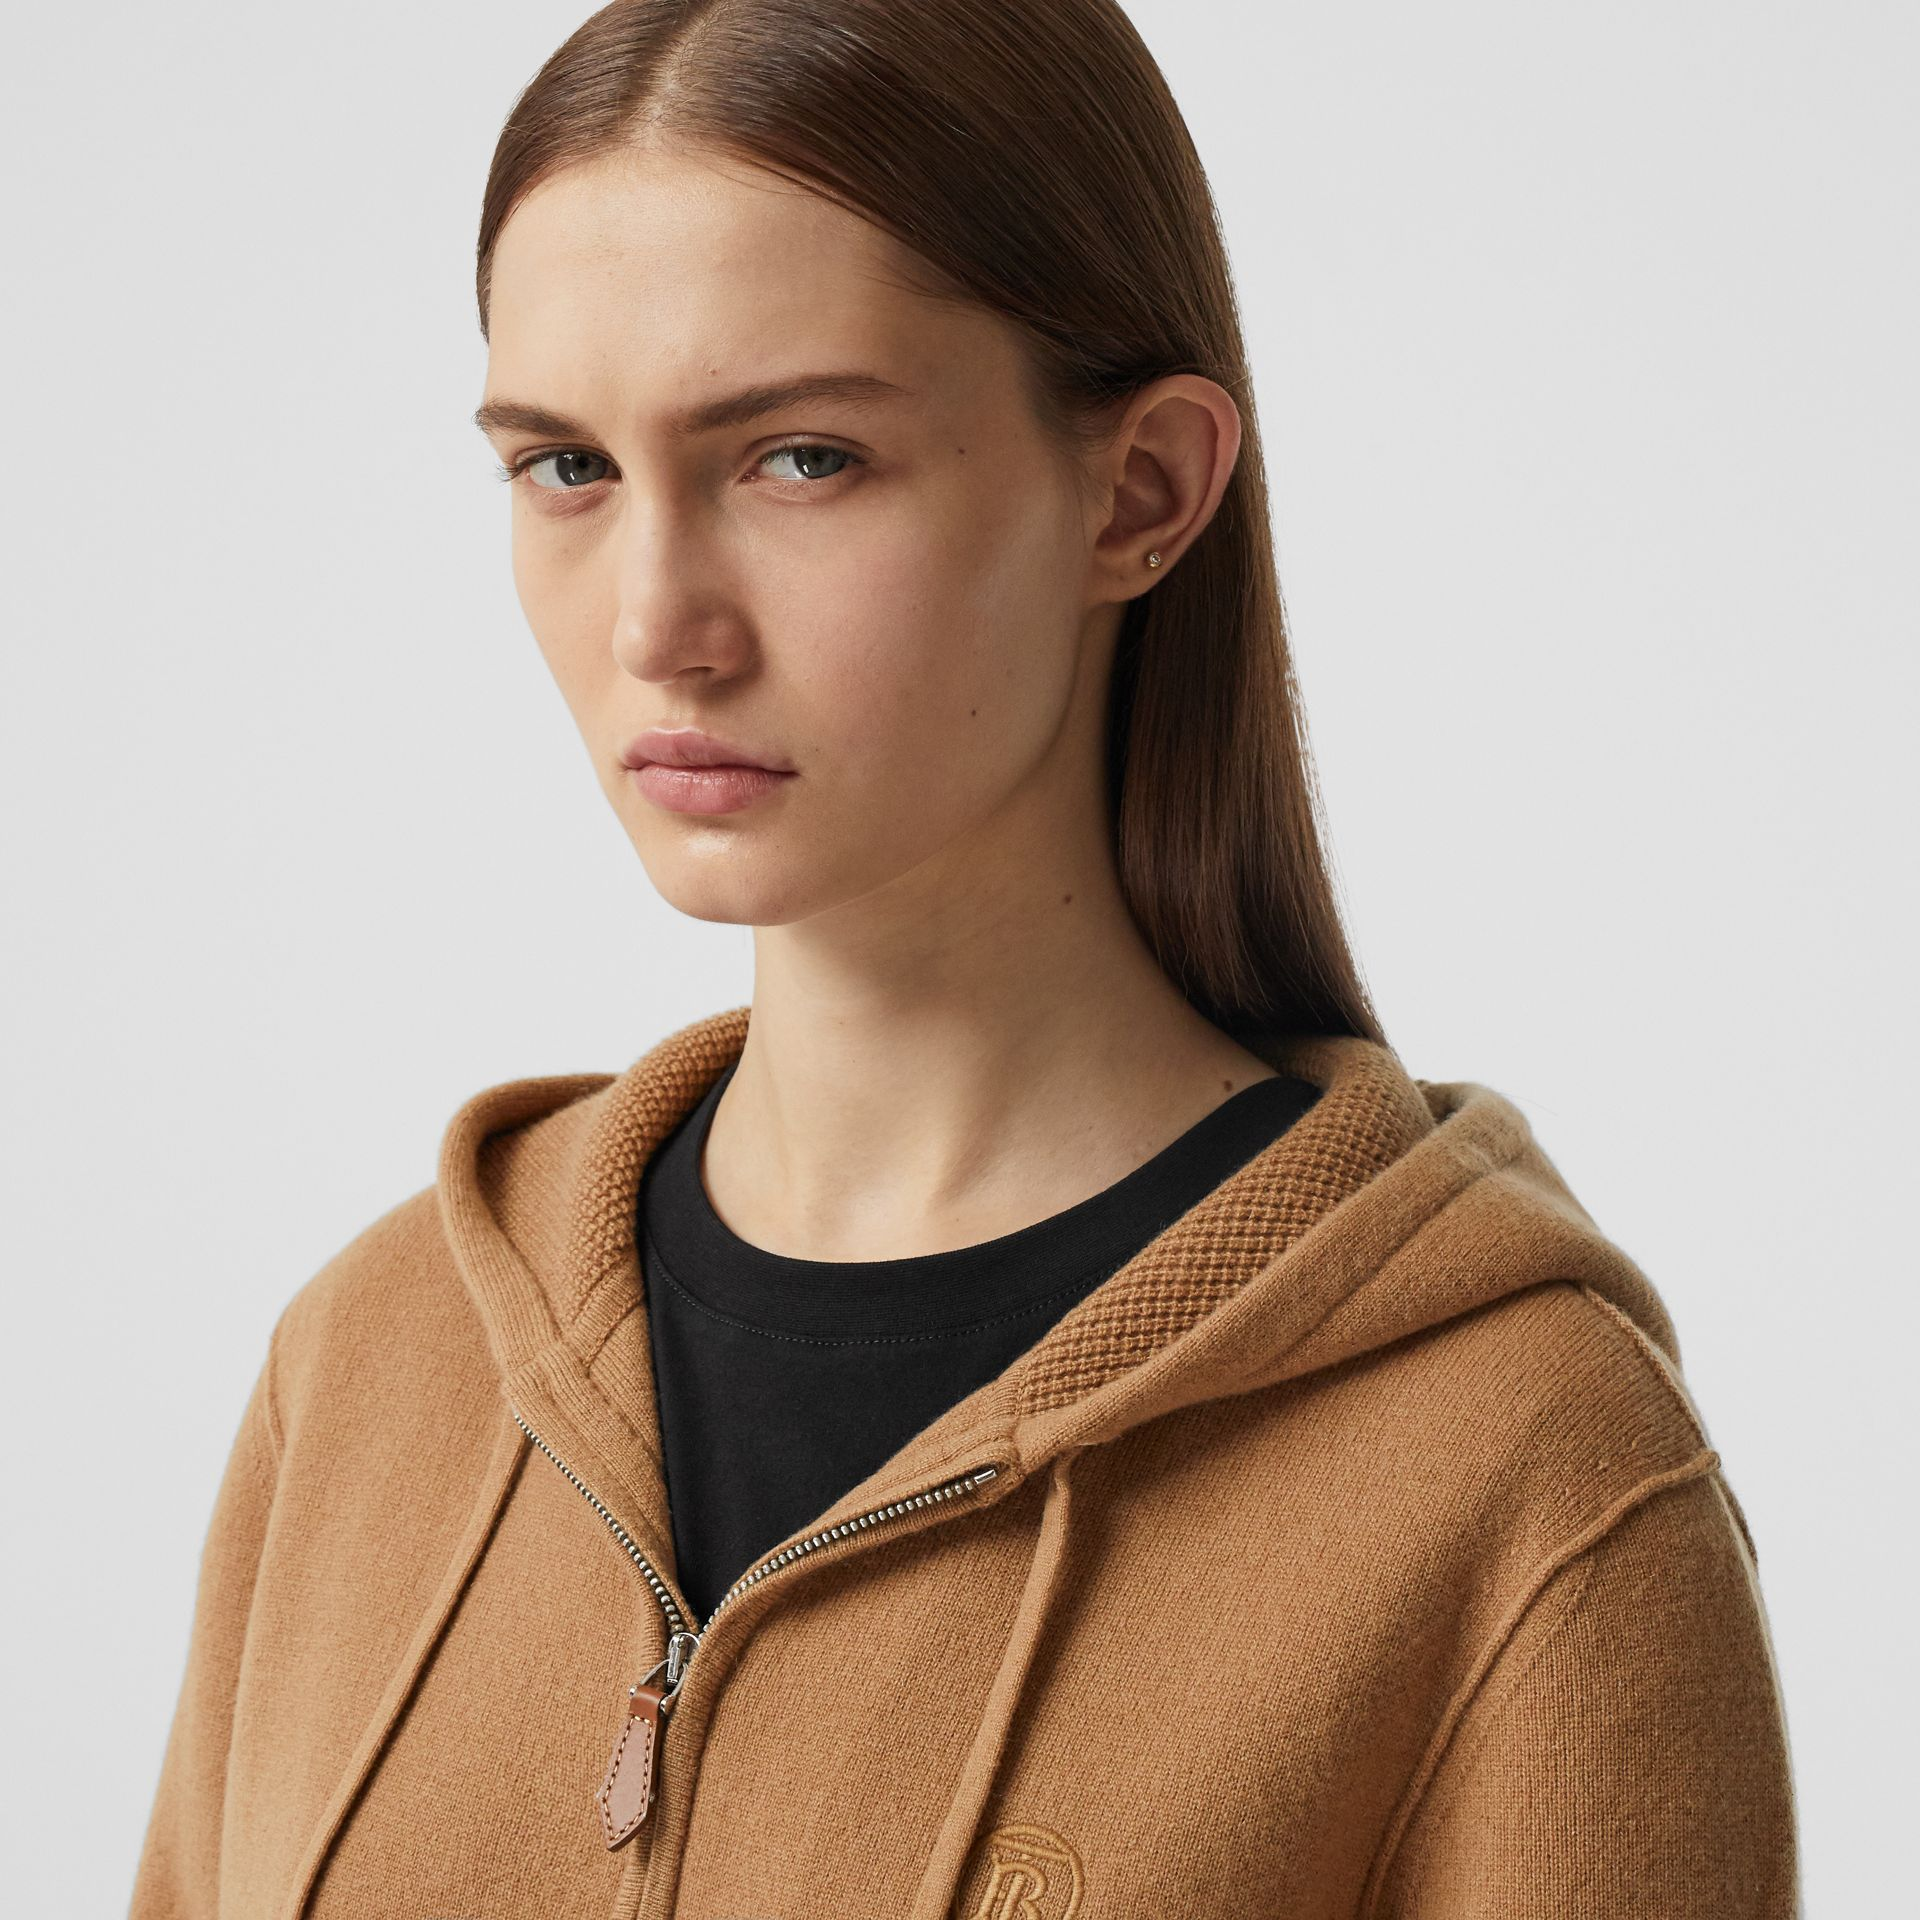 Monogram Motif Cashmere Blend Hooded Top in Camel - Women | Burberry - gallery image 1